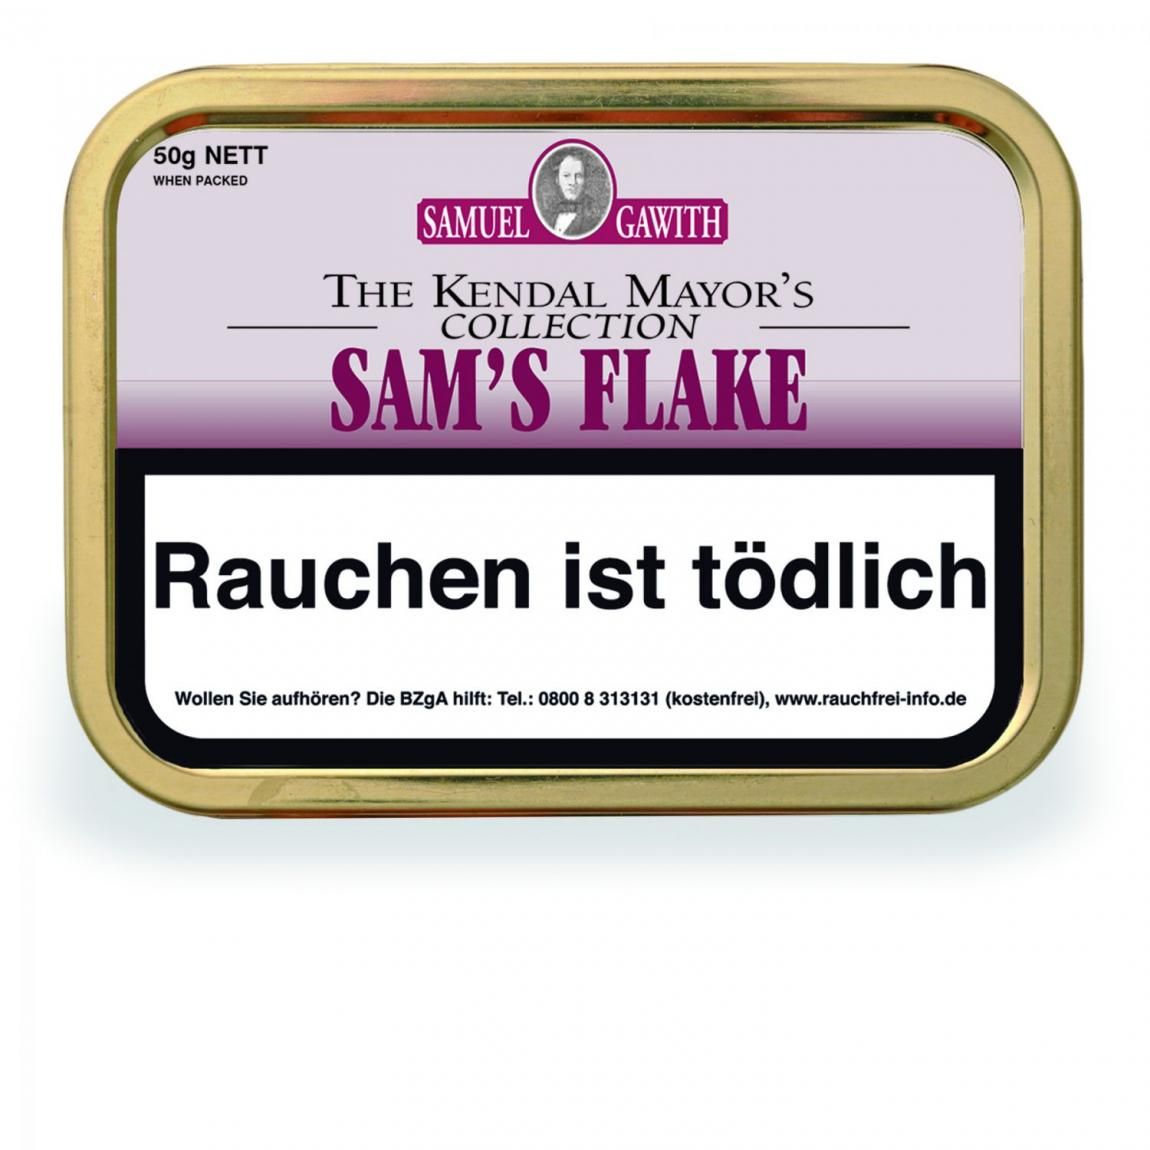 Samuel Gawith The Kendal Mayor's Collection »Sam's Flake«